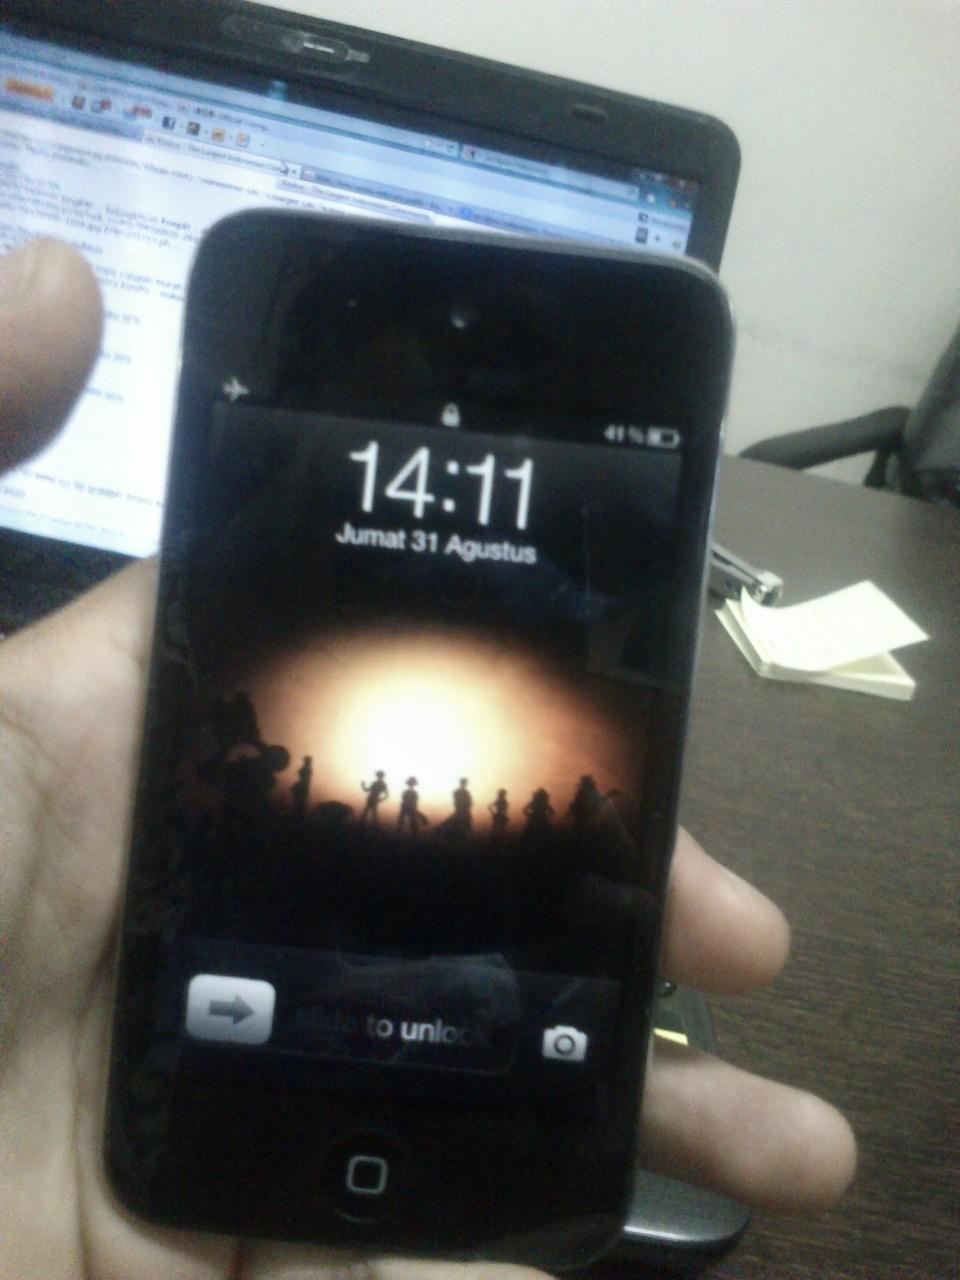 Jual Ipod 4th 32 gb murah full aplikasi